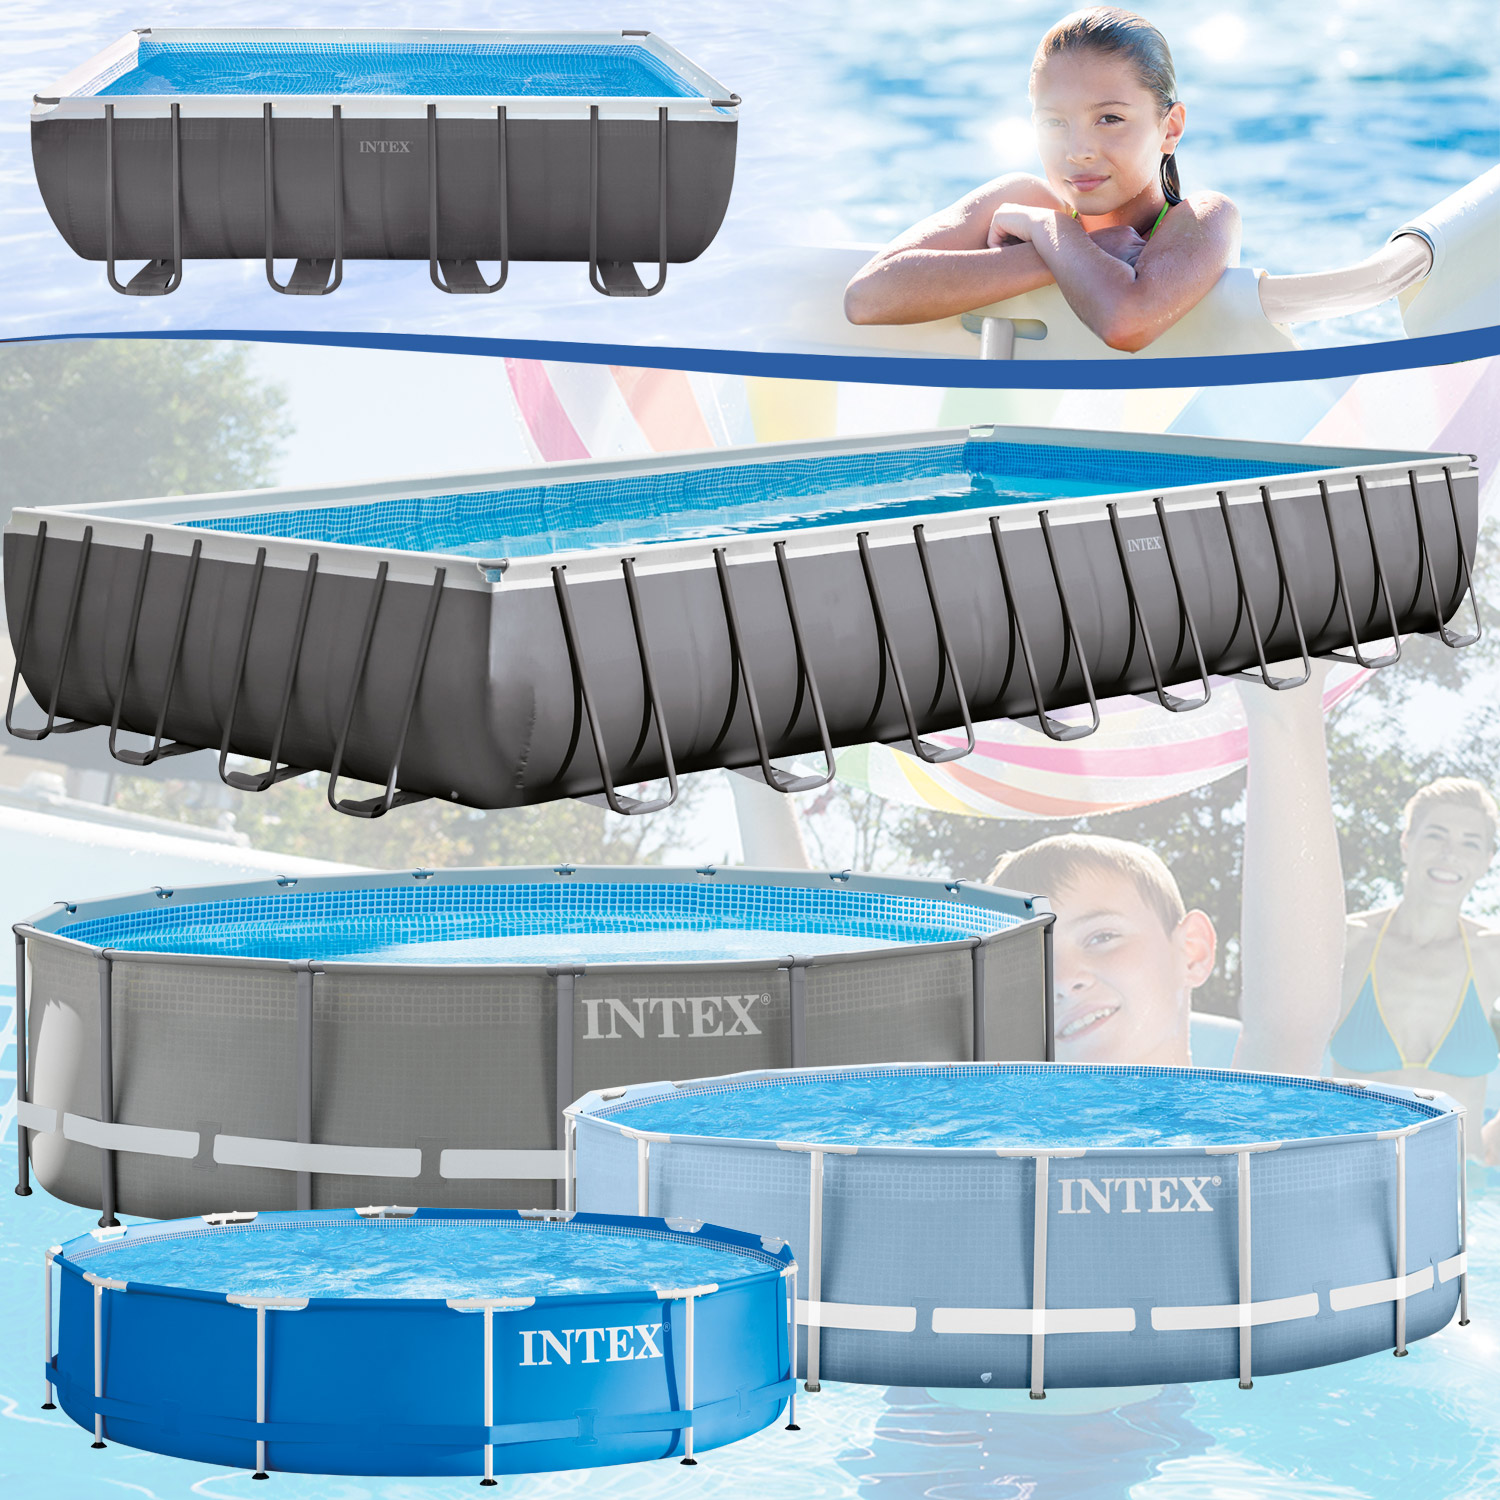 intex frame stahlrohrbecken swimming pool schwimmbad. Black Bedroom Furniture Sets. Home Design Ideas